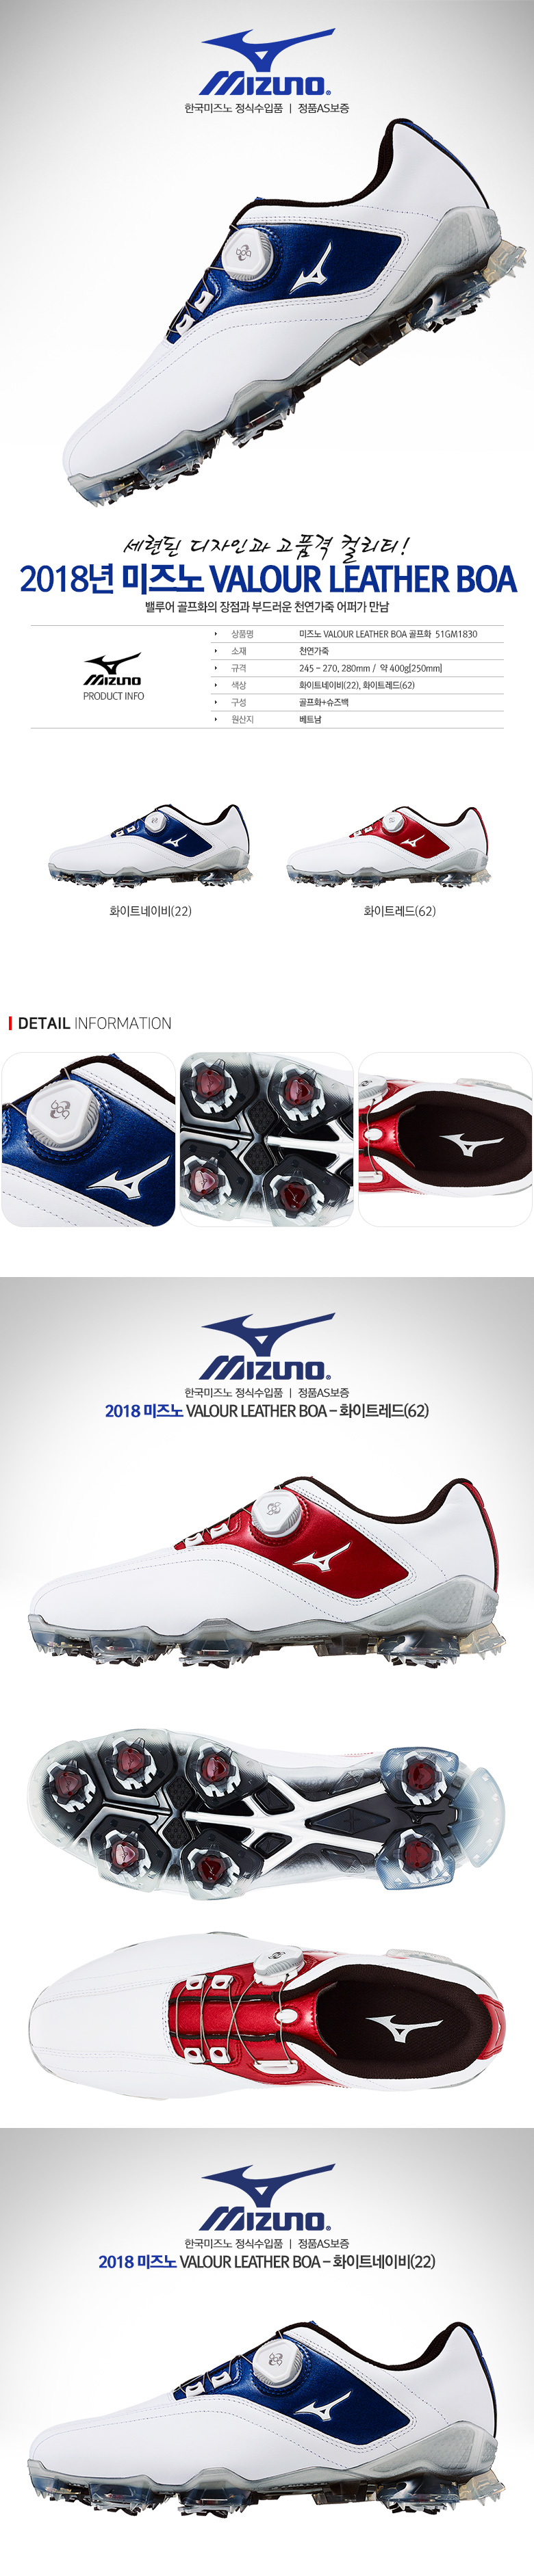 mizuno_valour_leather_shoes.jpg